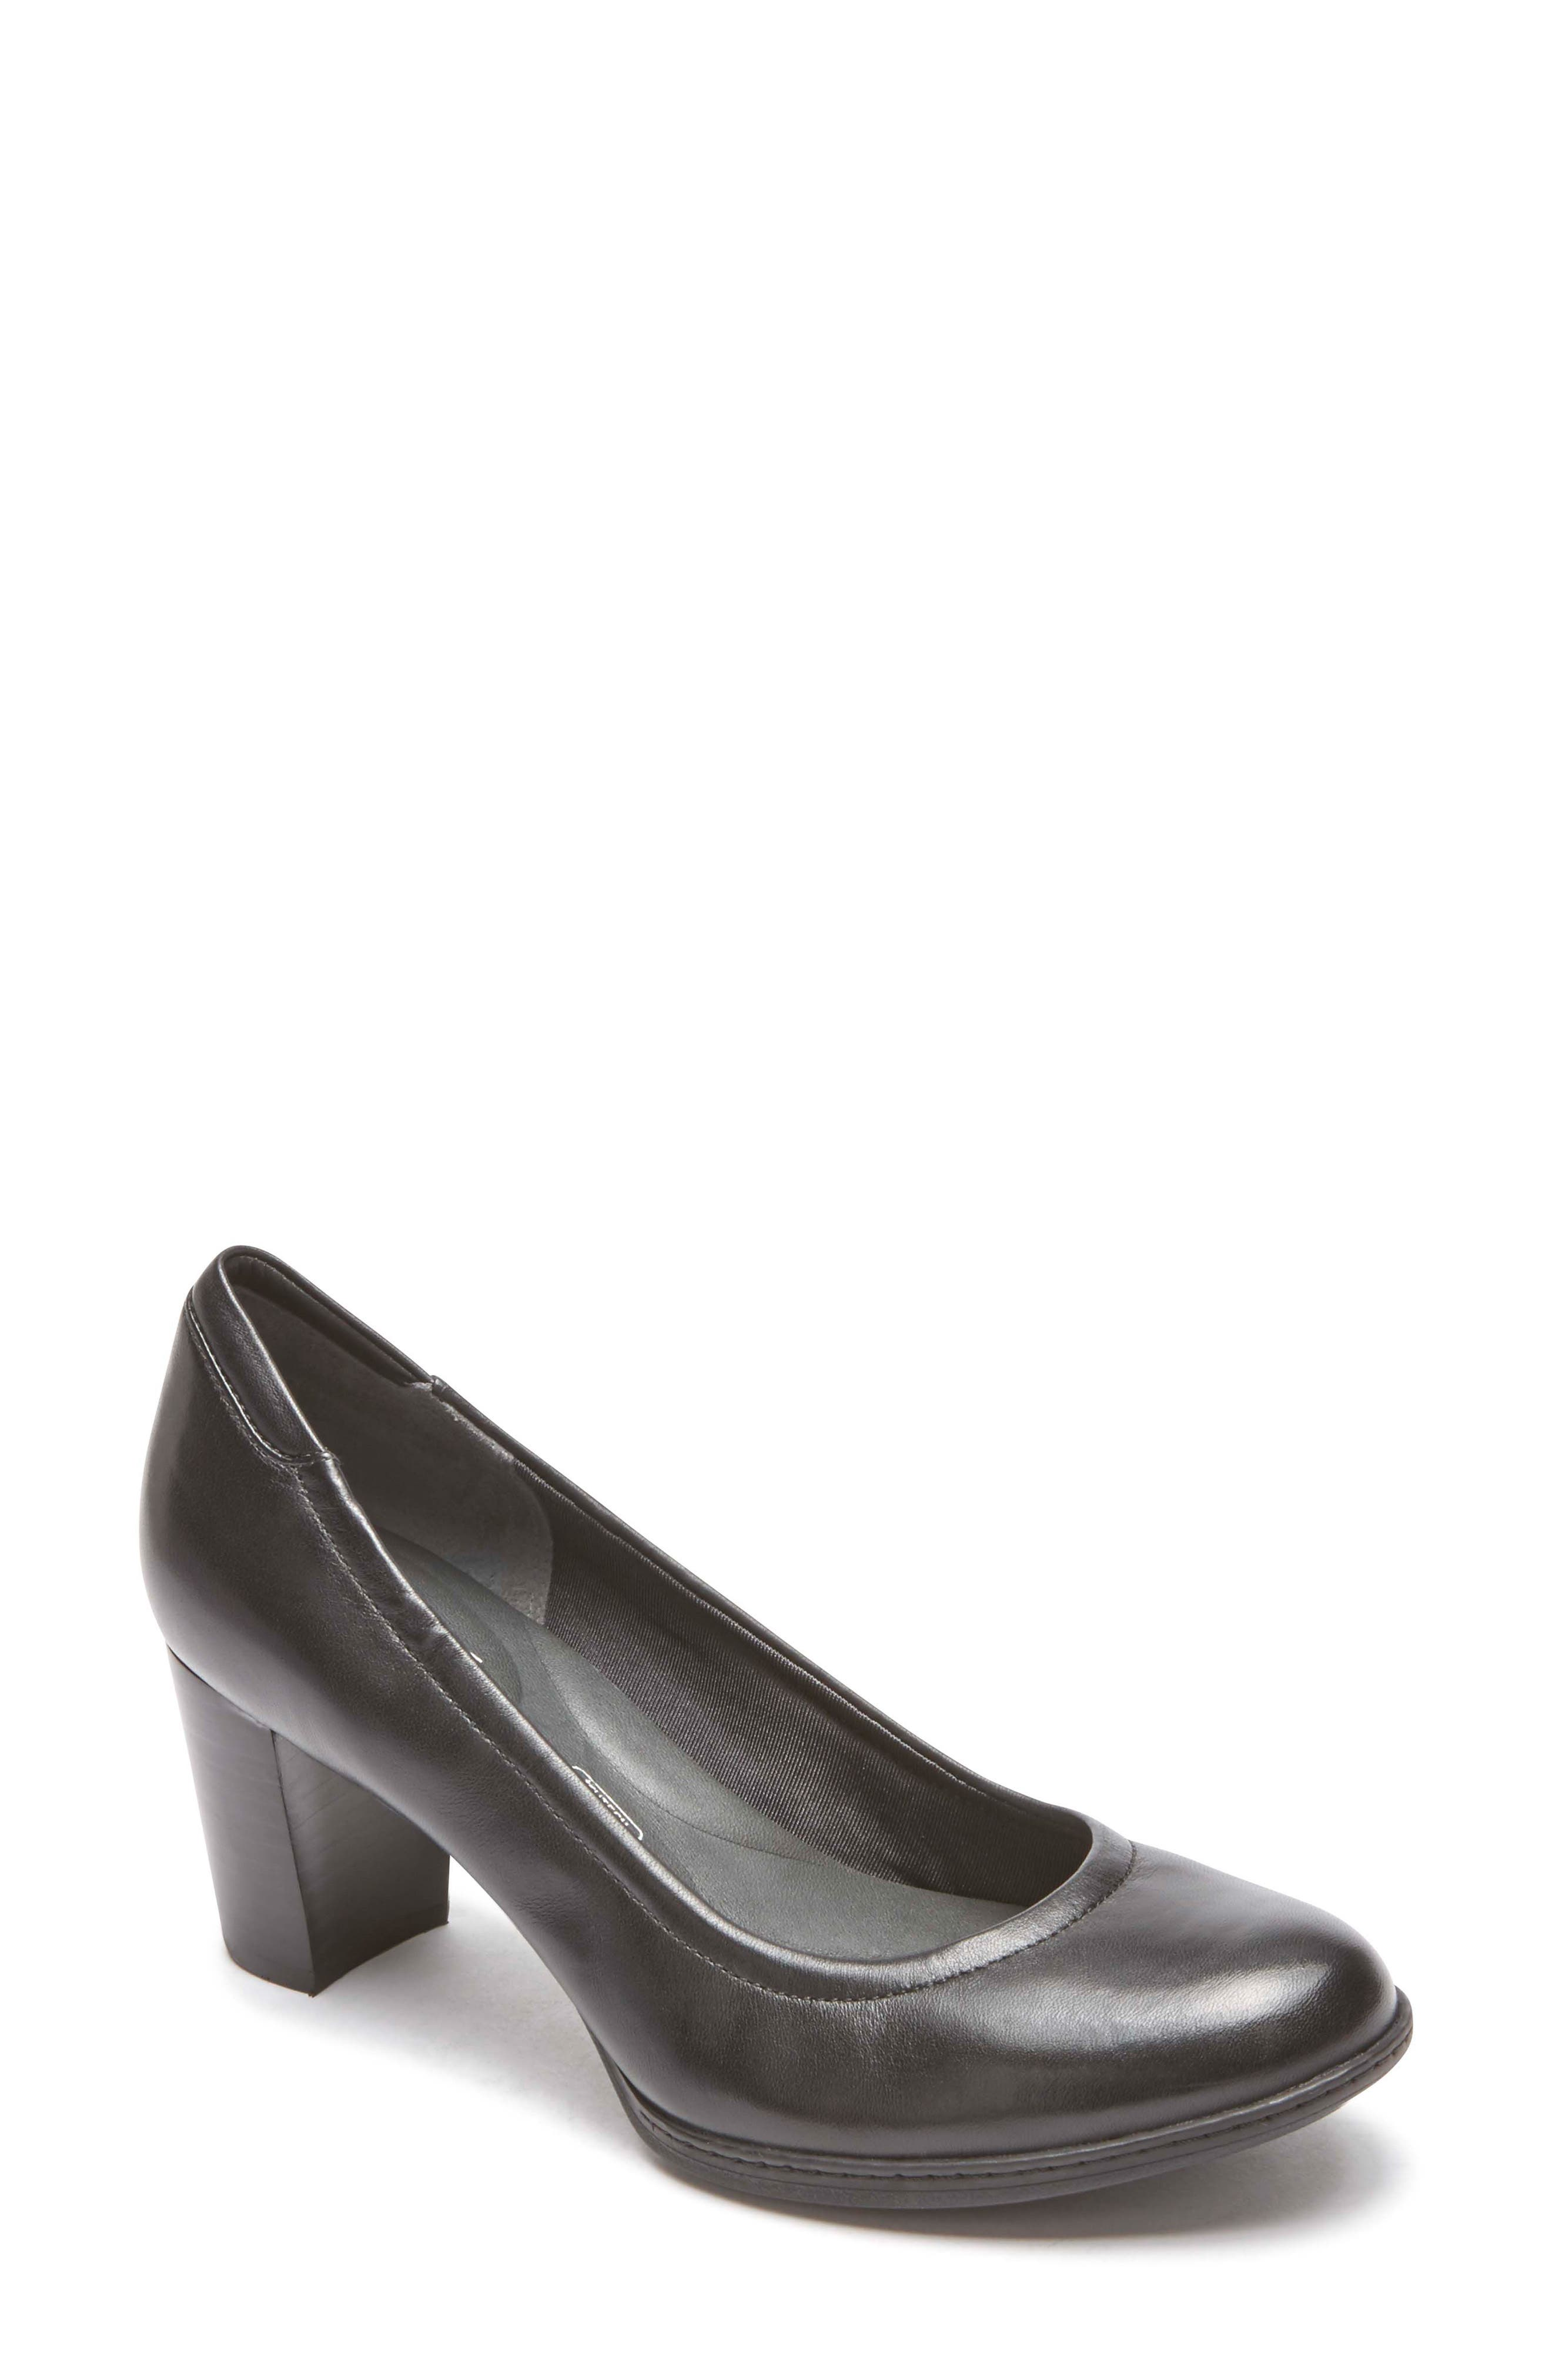 Chaya Round Toe Pump,                         Main,                         color, BLACK LEATHER